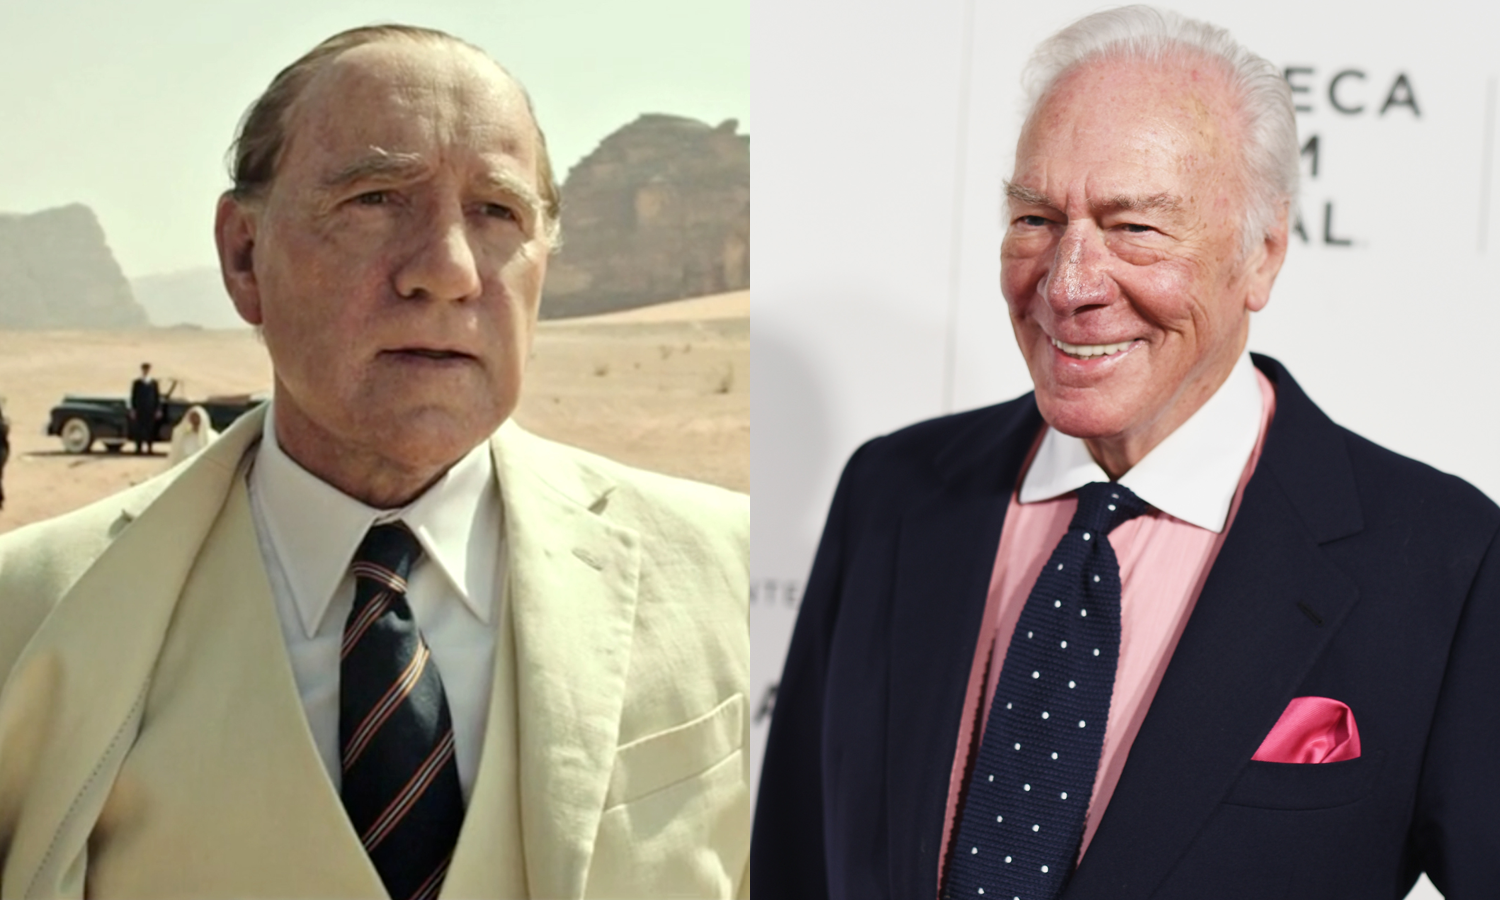 Kevin Spacey Christopher Plummer Jean Paul Getty